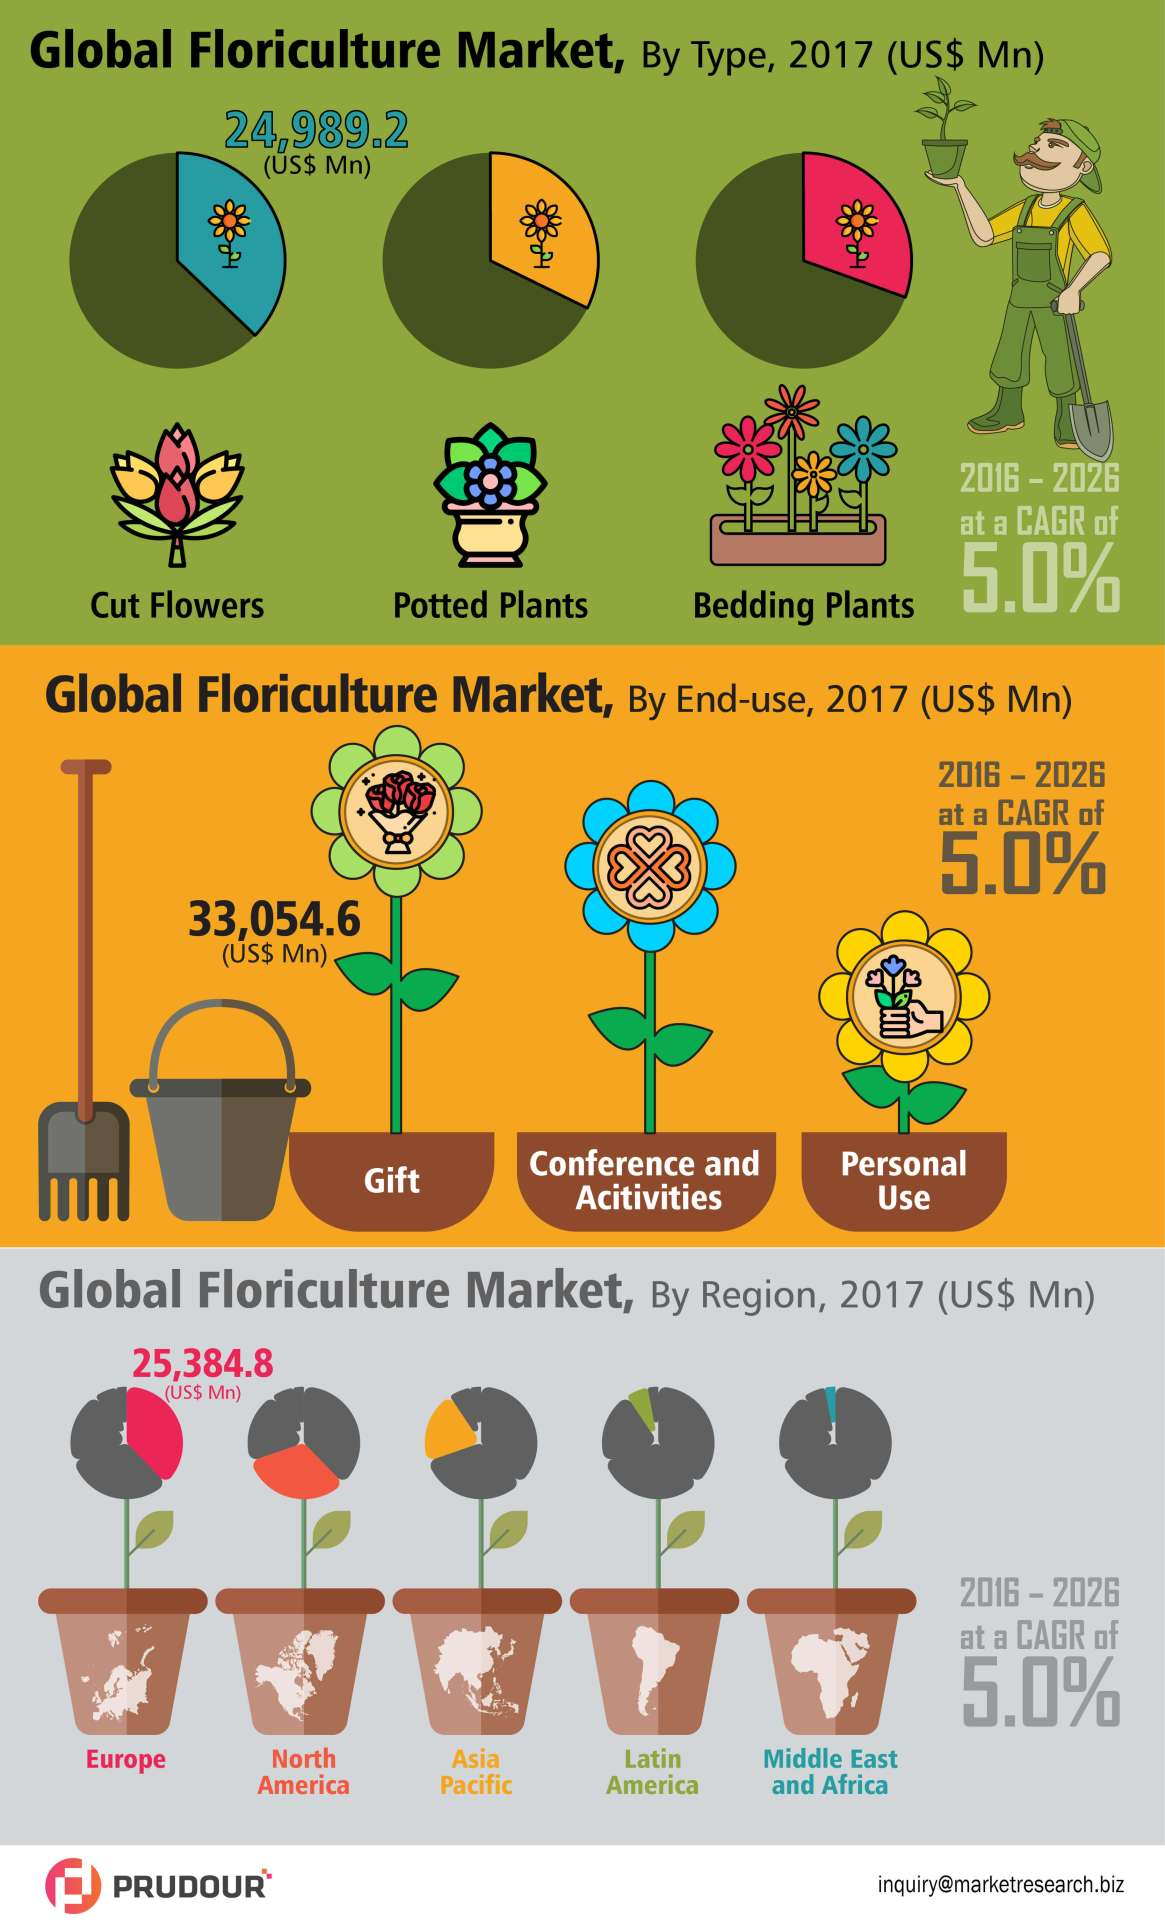 Floriculture Market Witnessed CAGR of Over 5.0% During 2017-2026